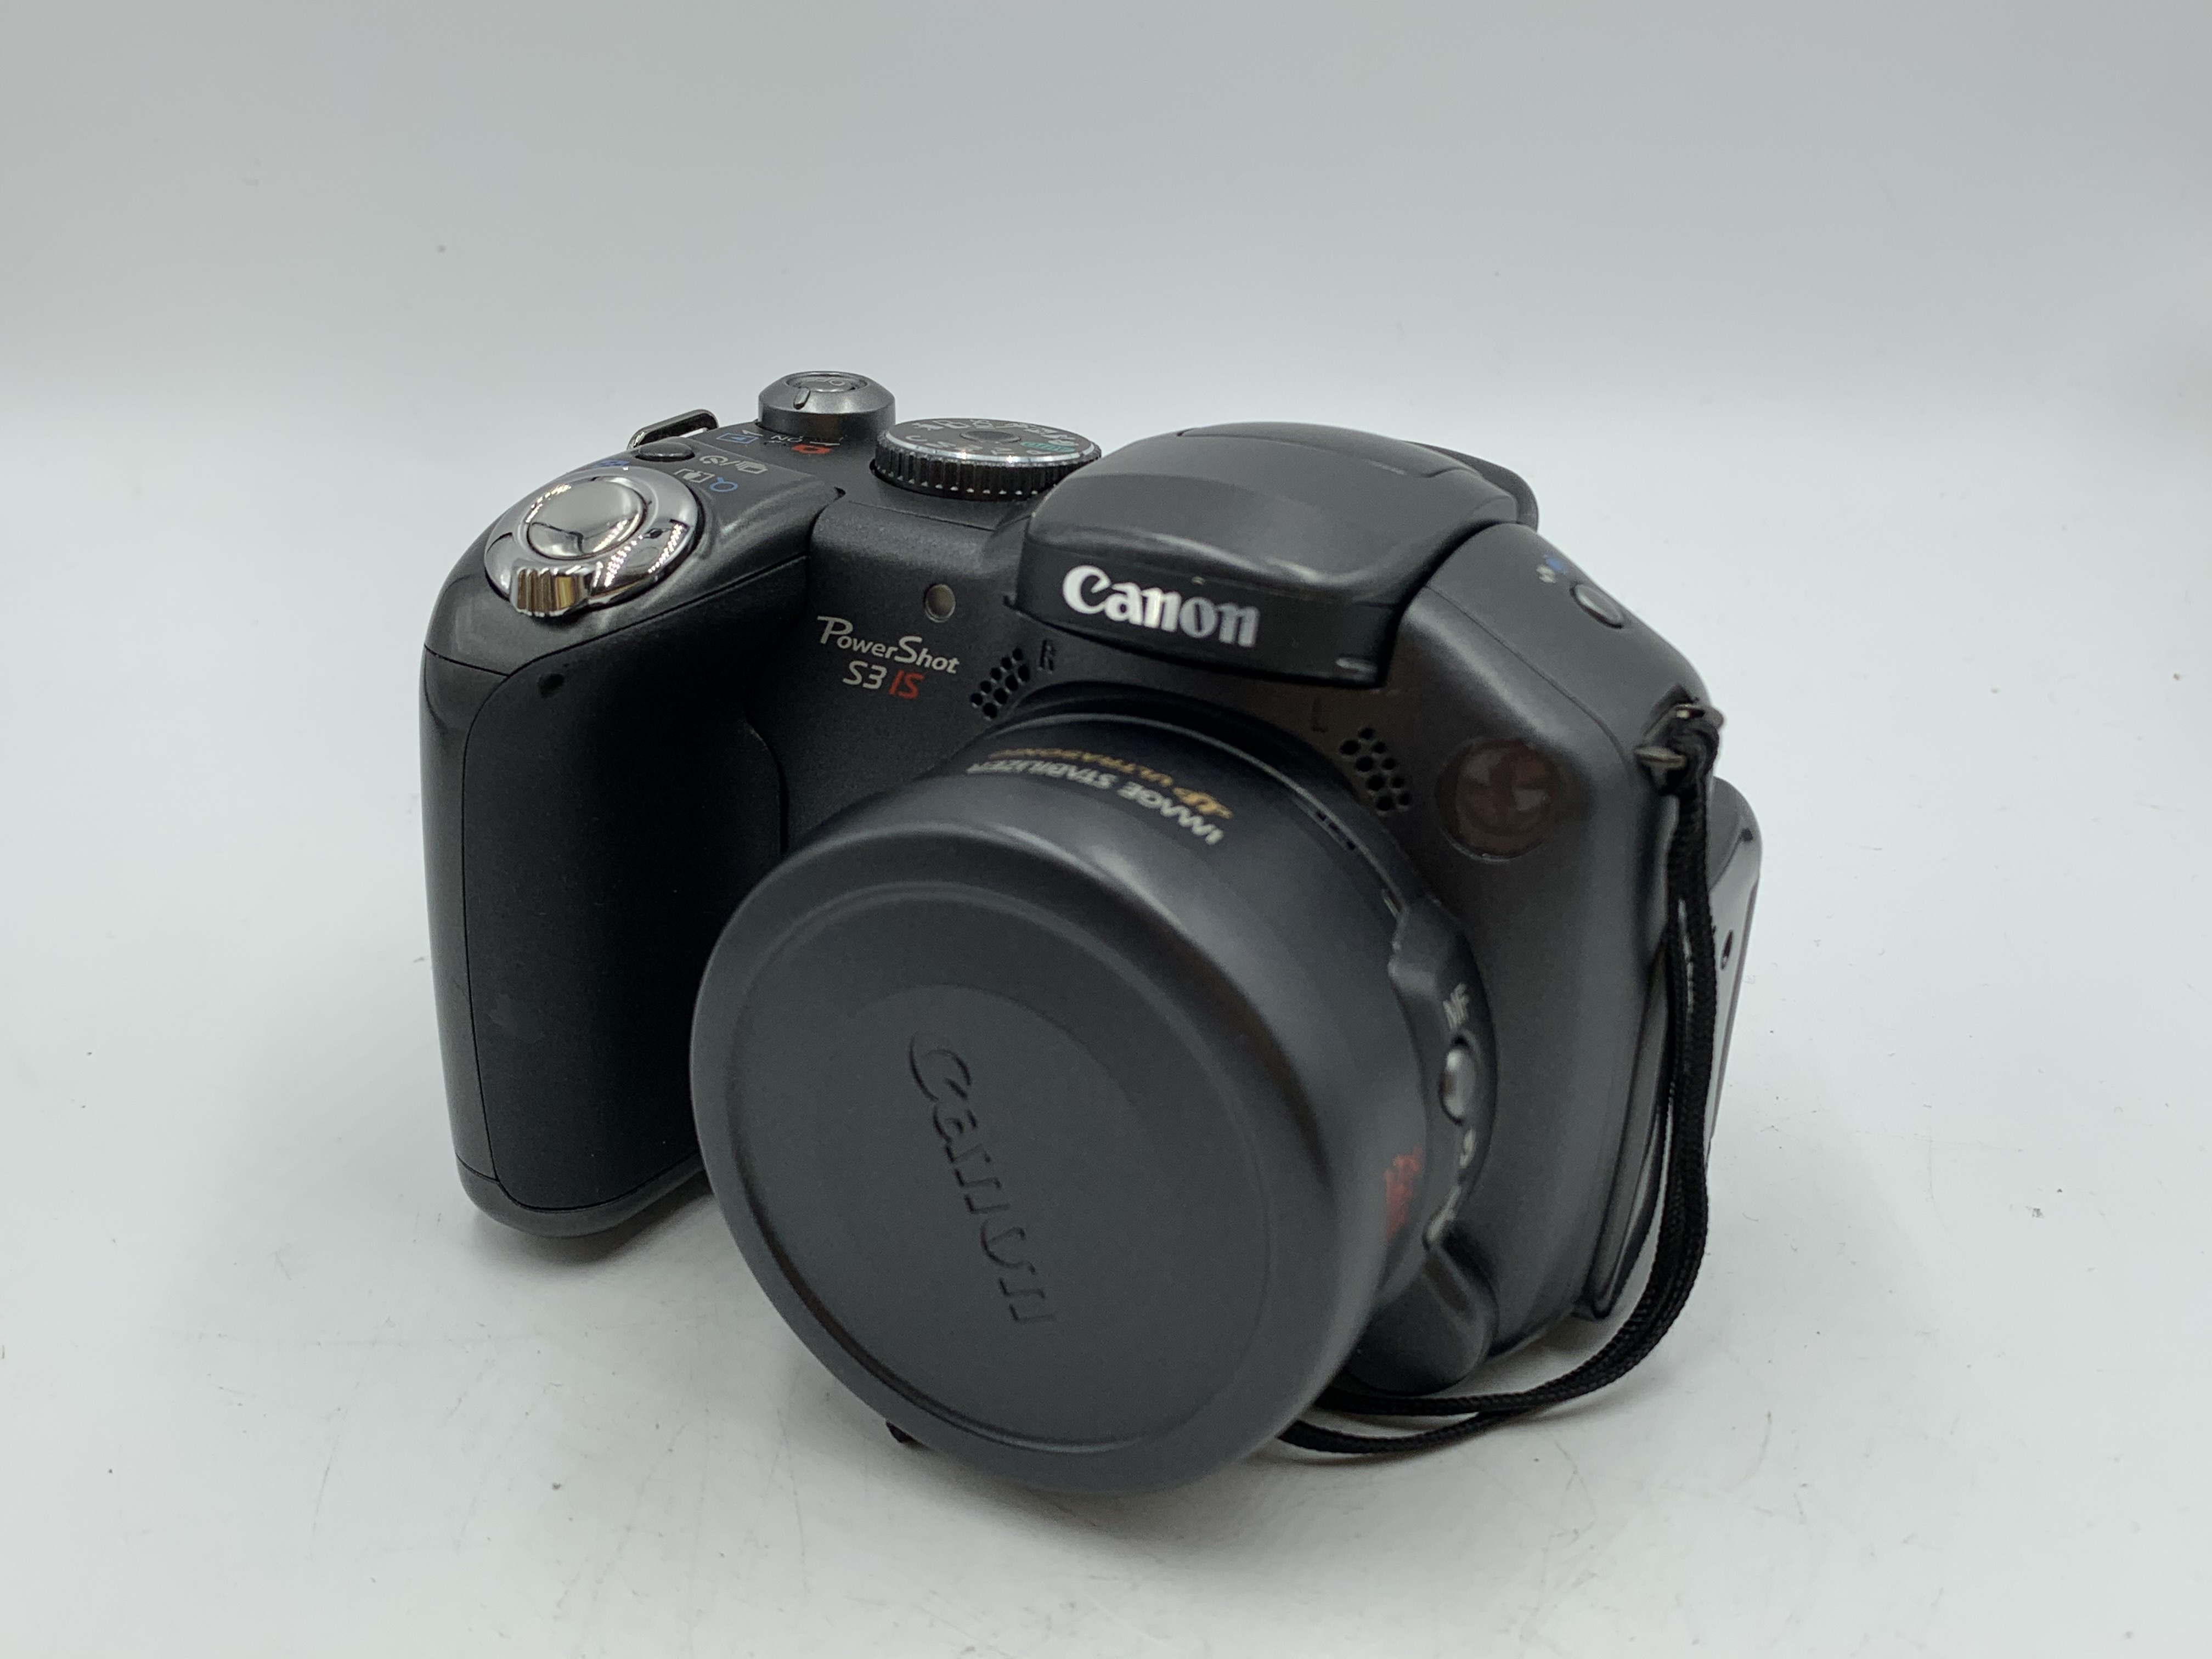 Used Canon S3 IS Digital Point and Shoot